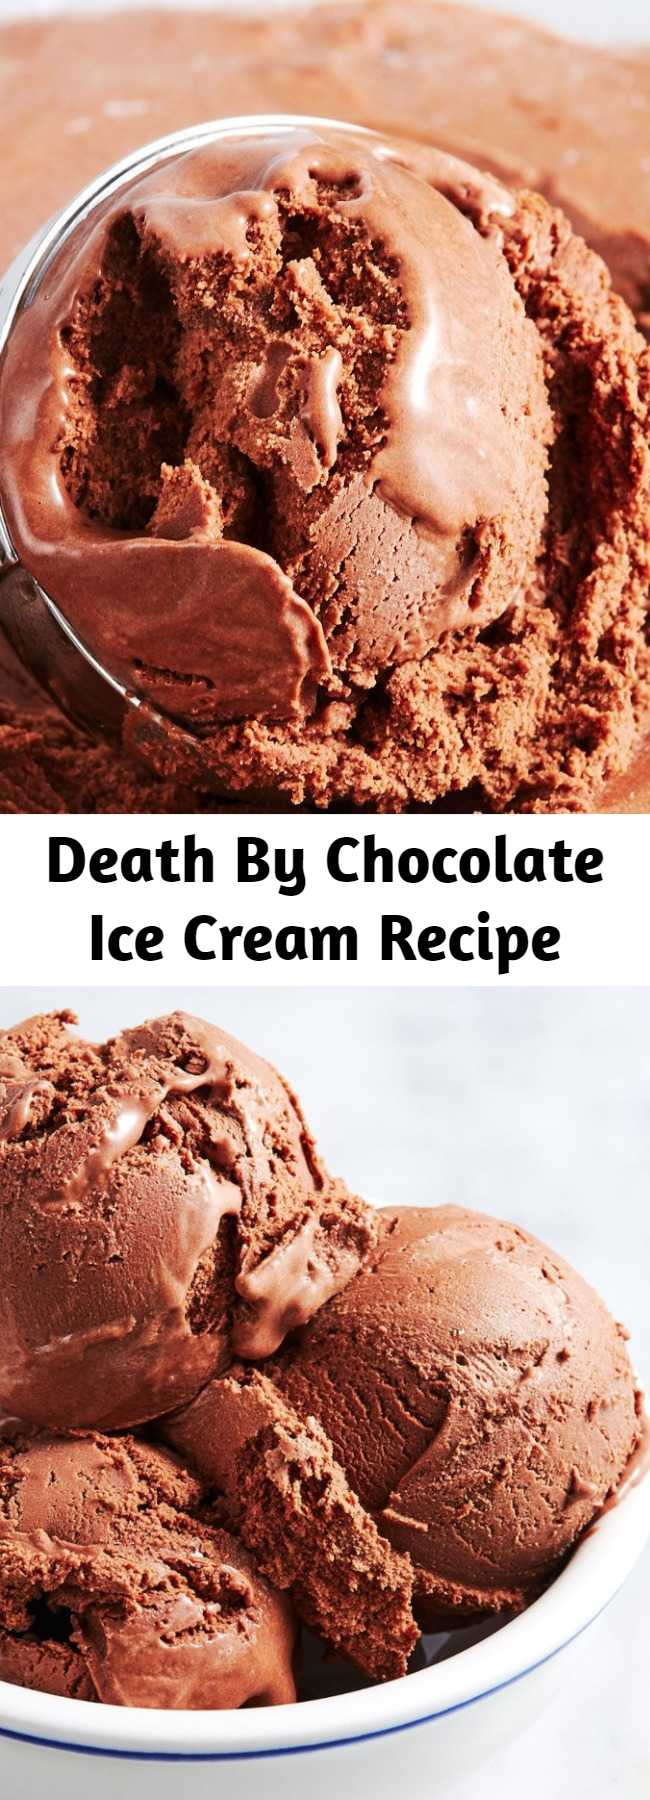 Death By Chocolate Ice Cream Recipe - Forget the freezer aisle and try your hand at homemade Chocolate Ice Cream with this recipe.